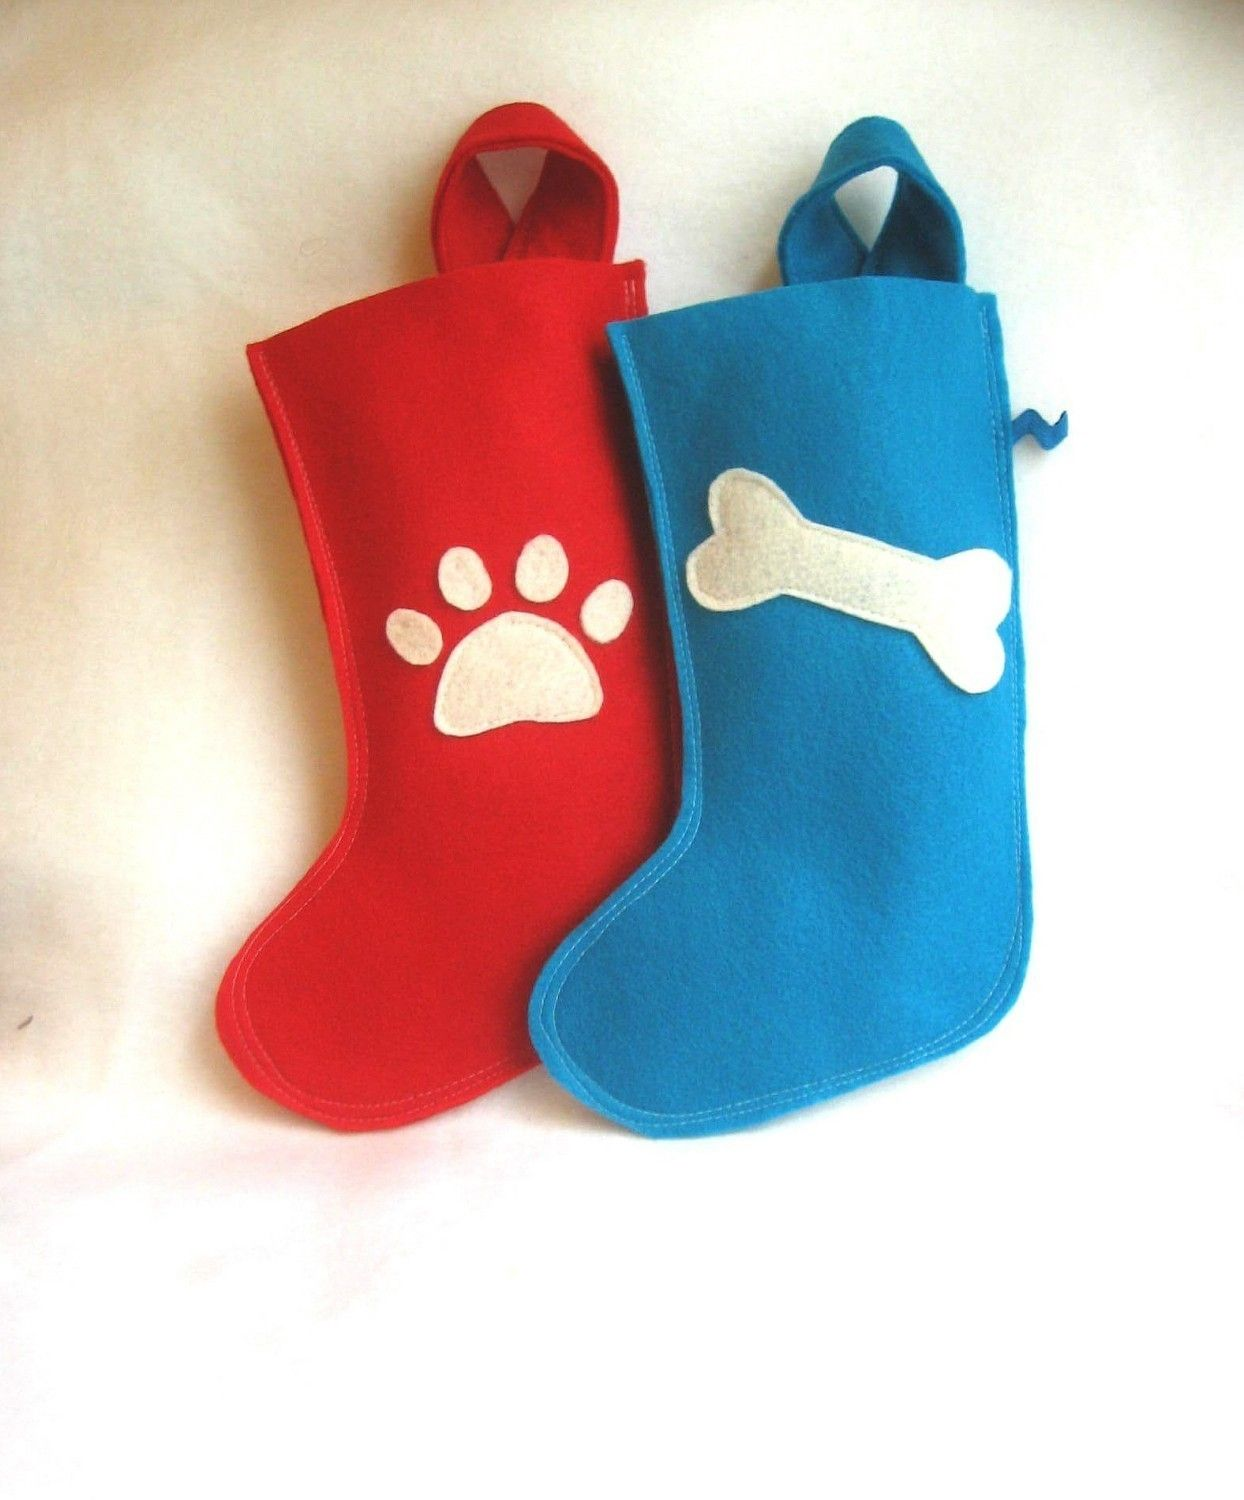 Handmade Christmas Stockings Pet Christmas Stocking For Your Dog Or Cat In Eco Friendly Felt